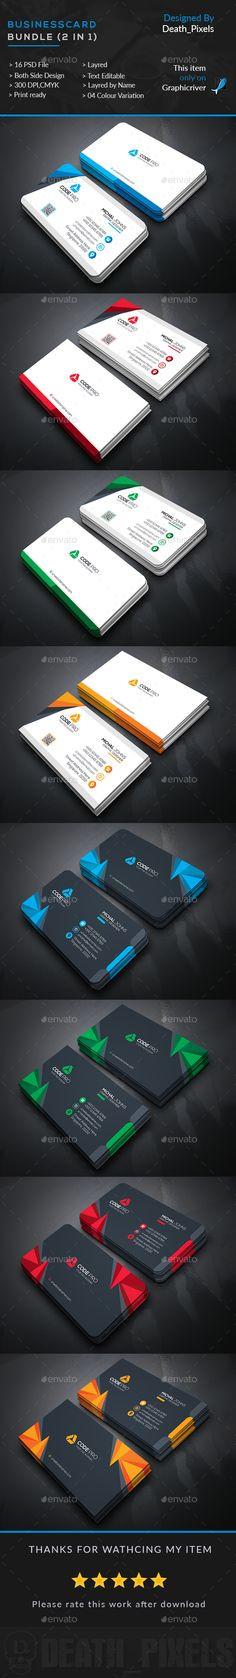 Business Card Templates PSD Bundle. Download here: http://graphicriver.net/item/business-card-bundle-2-in-1/15911057?ref=ksioks